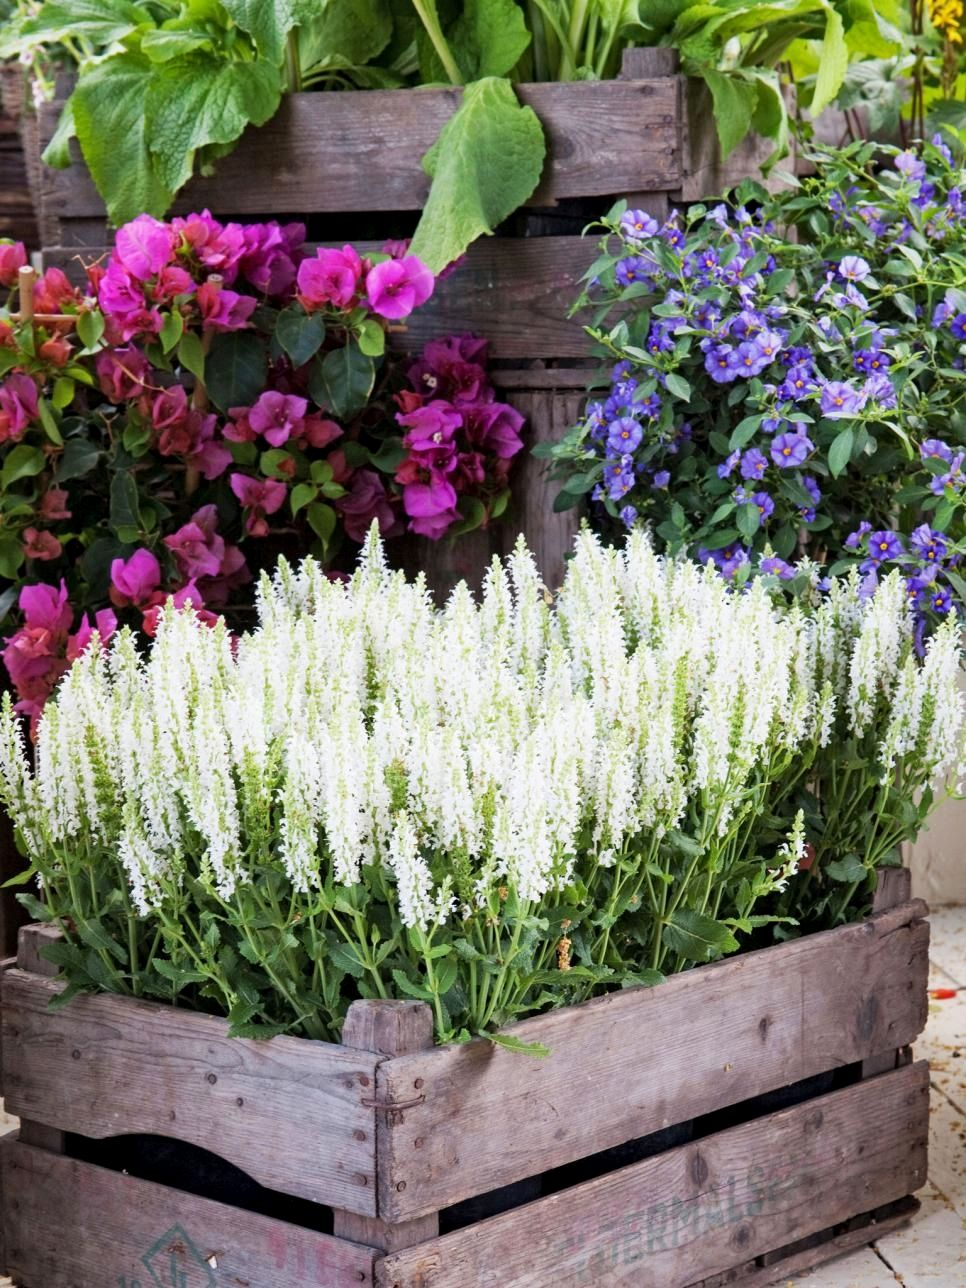 Beautiful container garden designs you might try for your patio